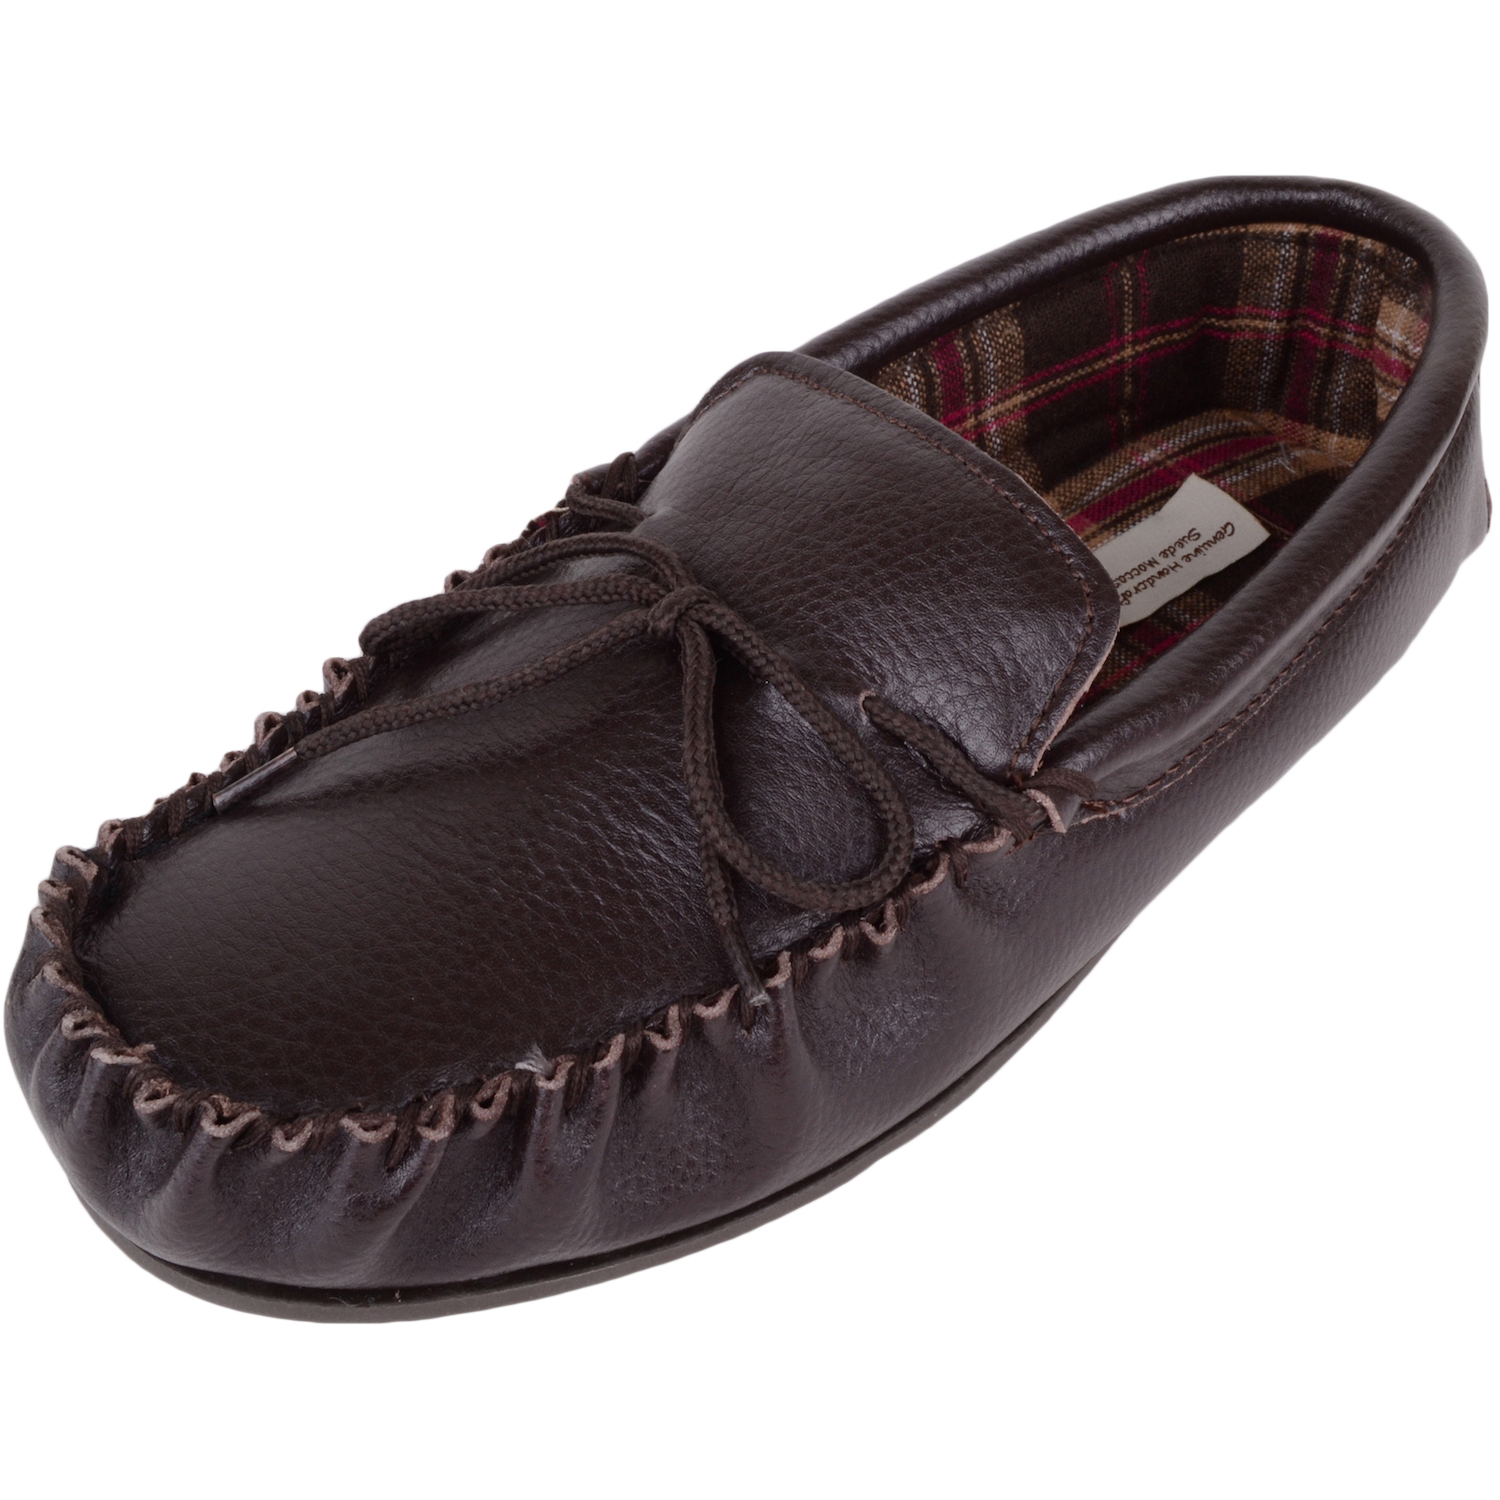 Snugrugs - Leather Cotton Lined Moccasins - Dark Brown